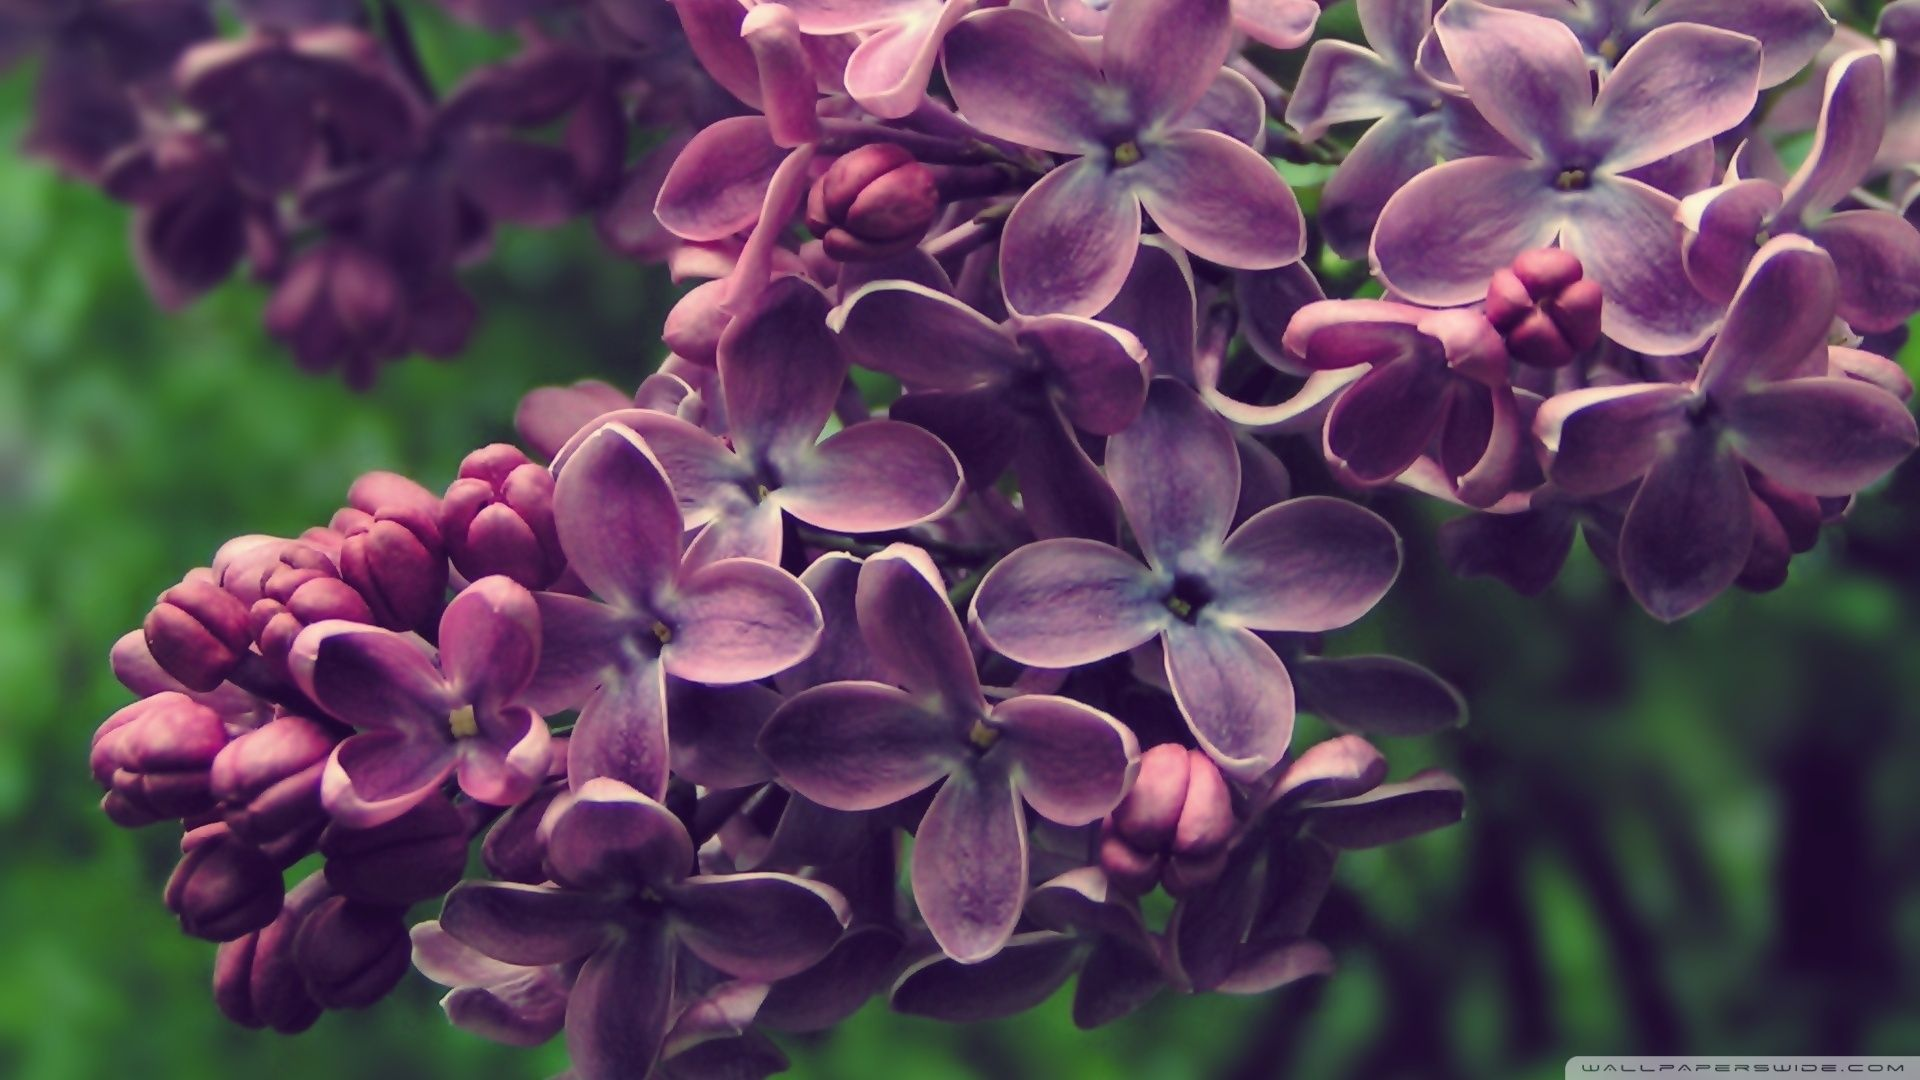 Lilac wallpaper image